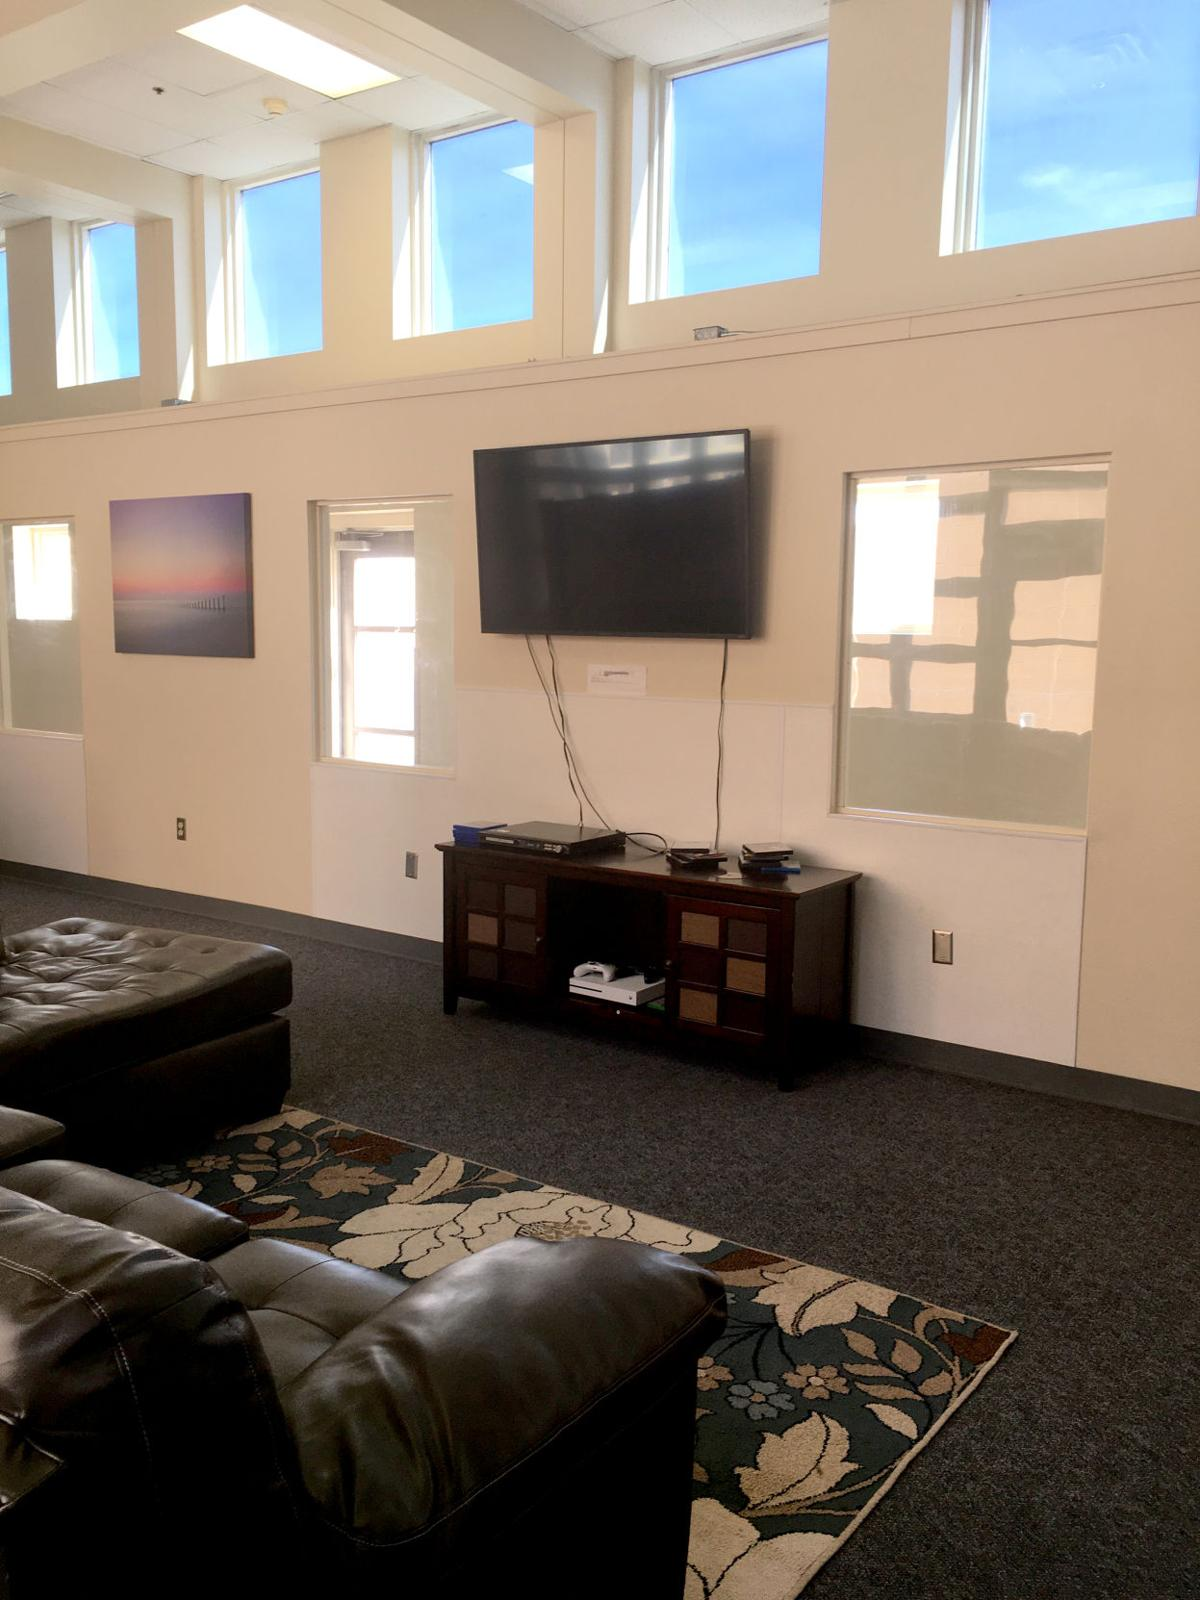 Spring Creek Youth Services Center has more home-like environment (copy)